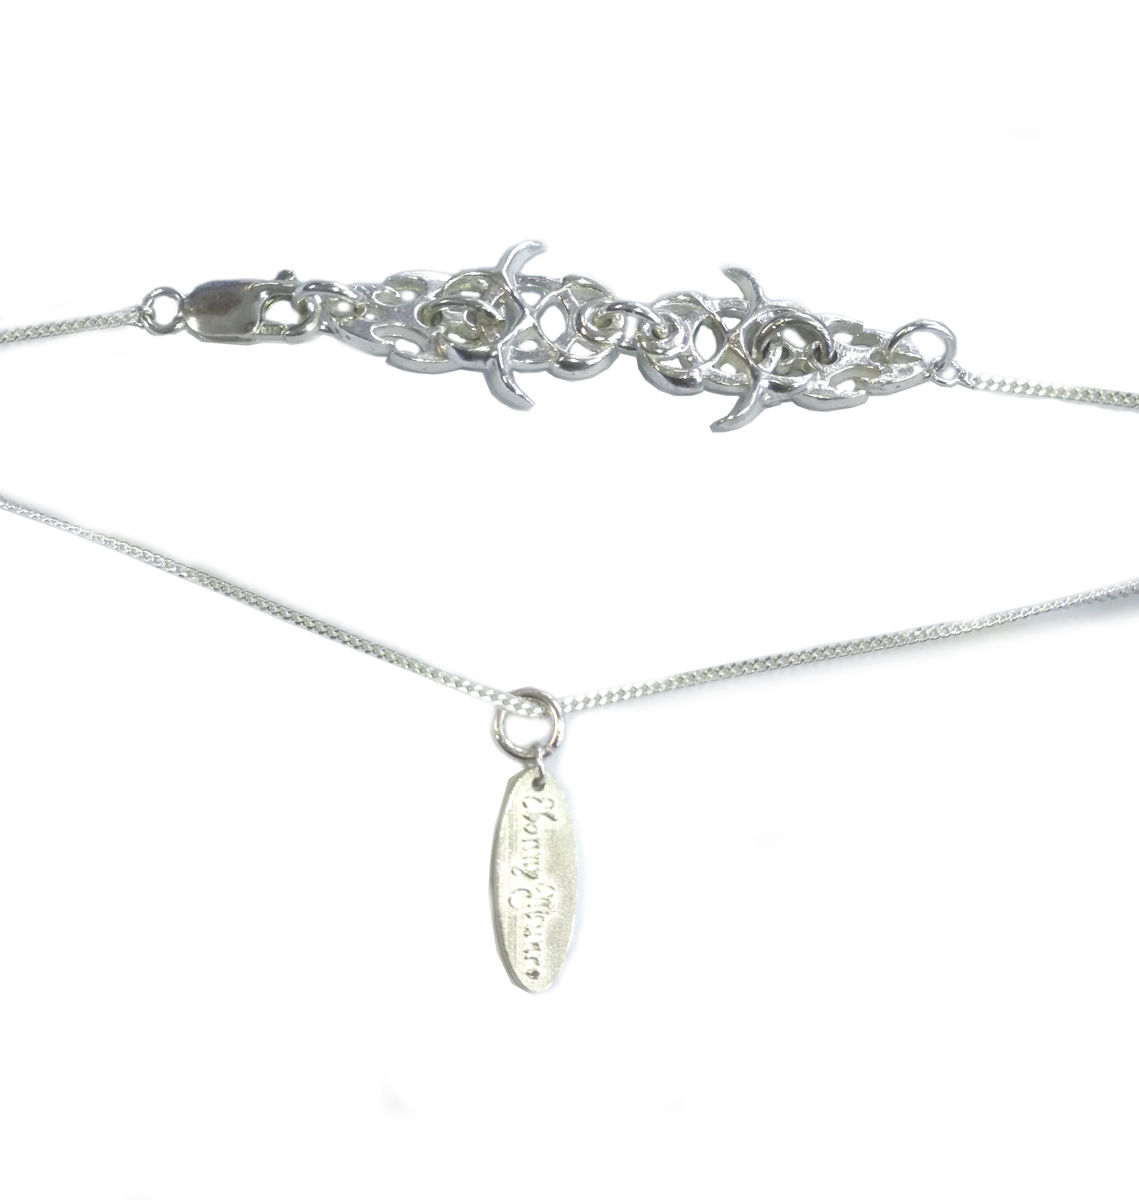 Vixen choker - product images  of